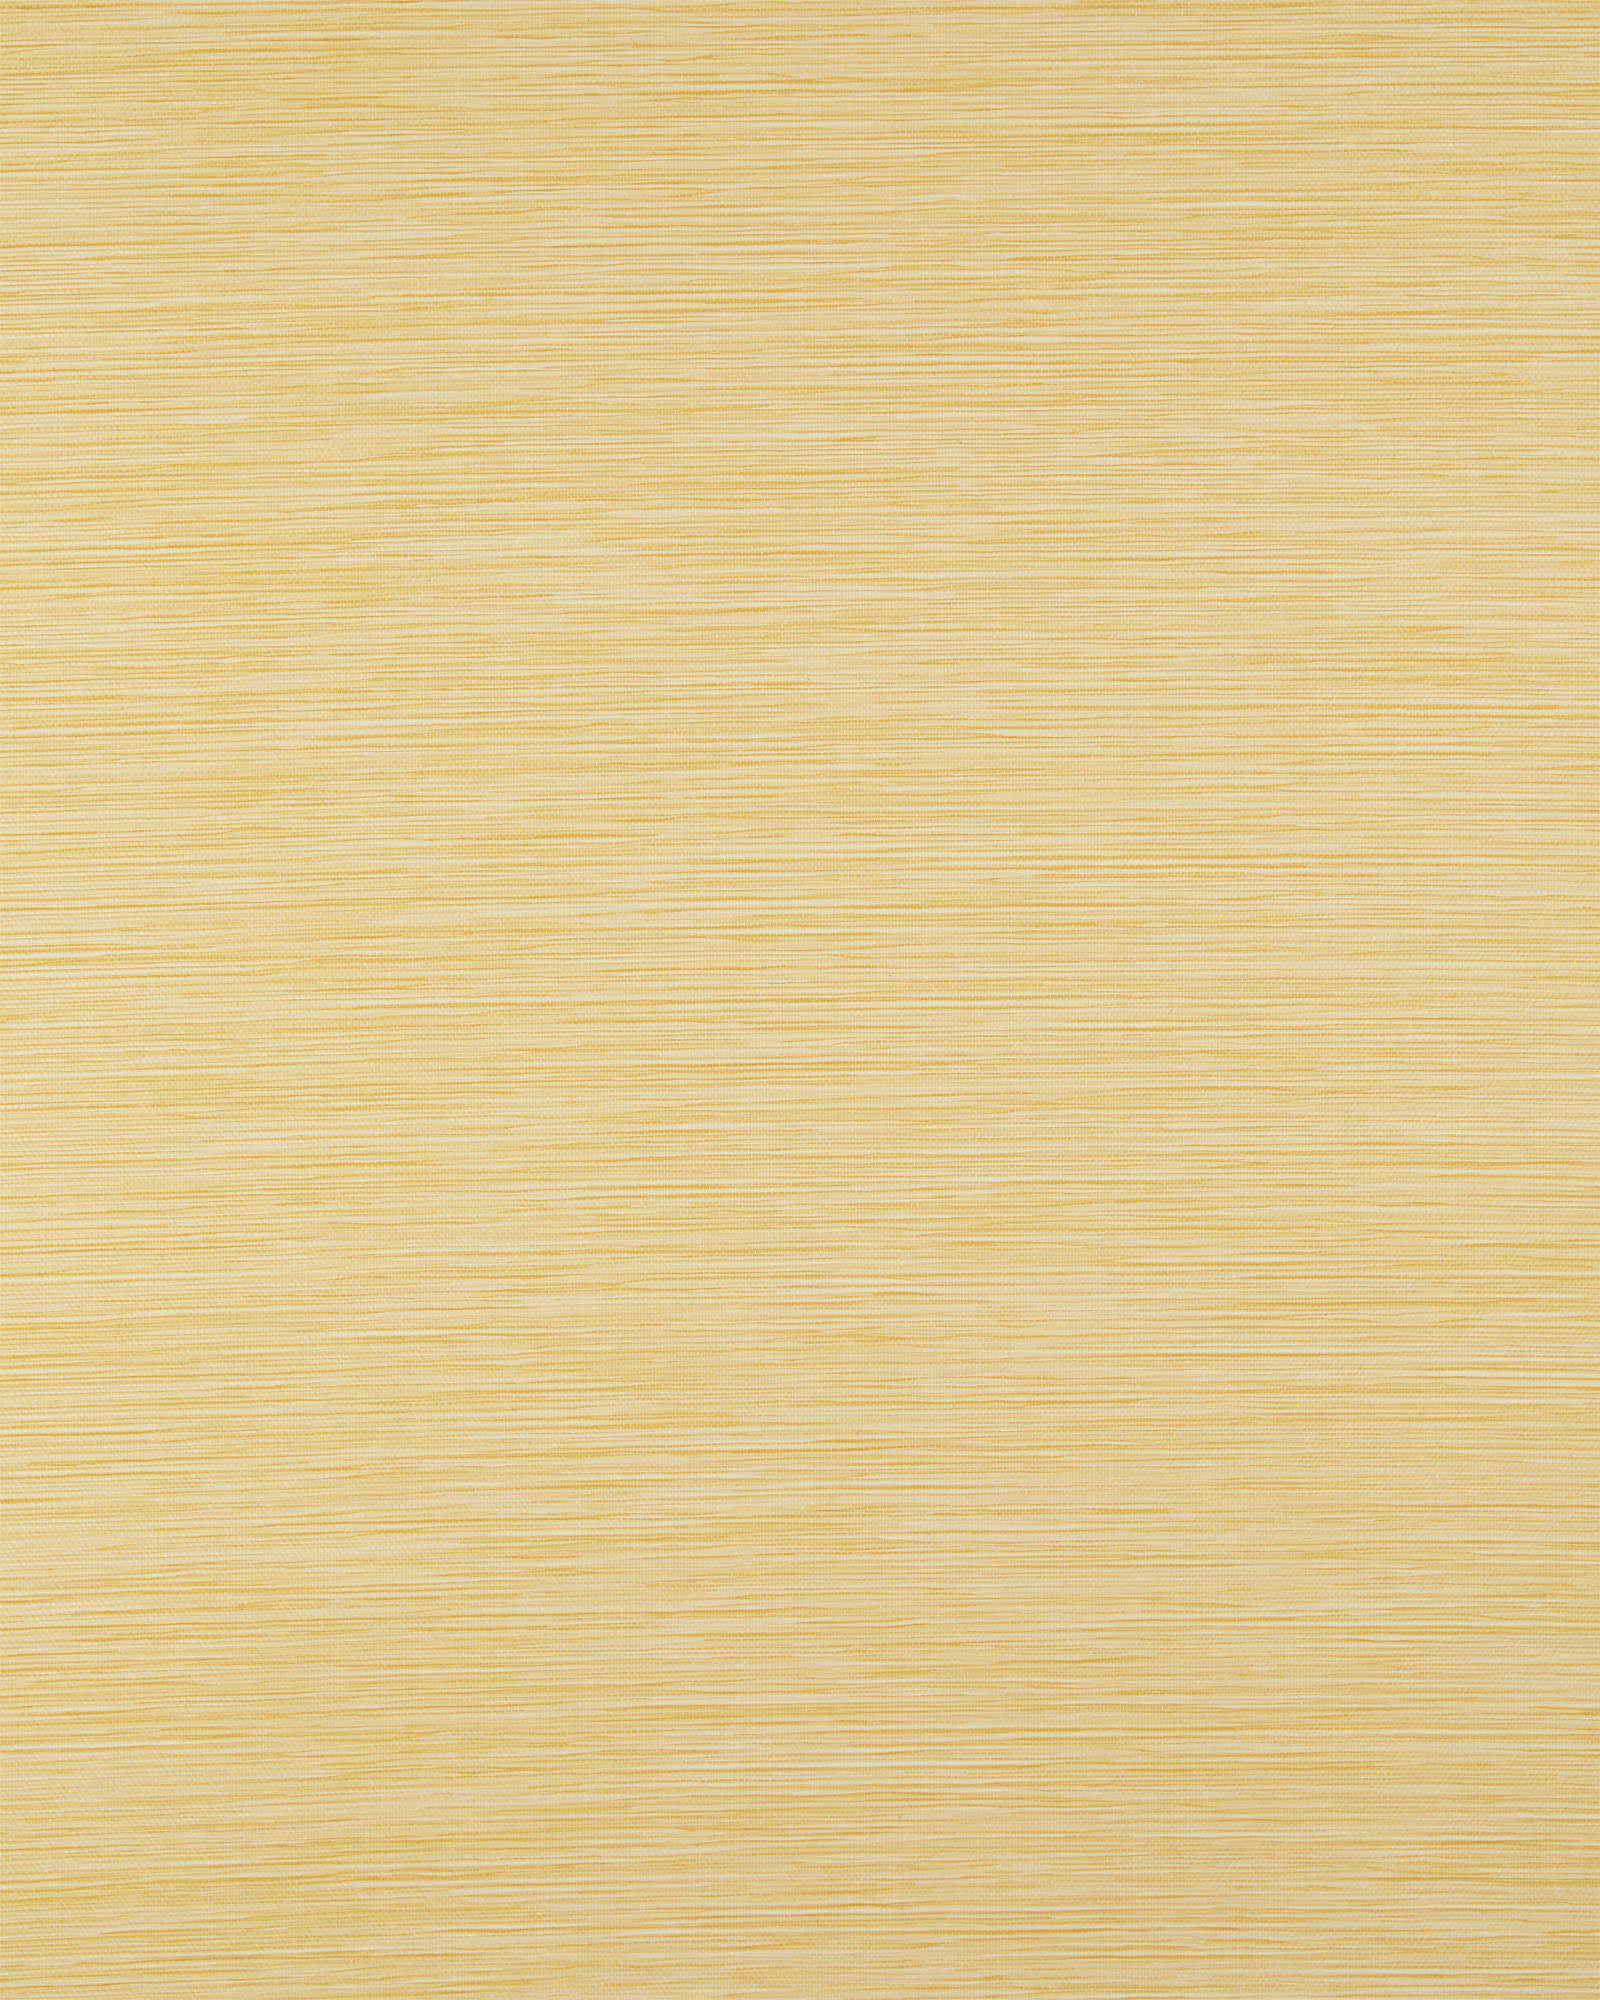 Swansea Paperweave Wallcovering Swatch, Dandelion